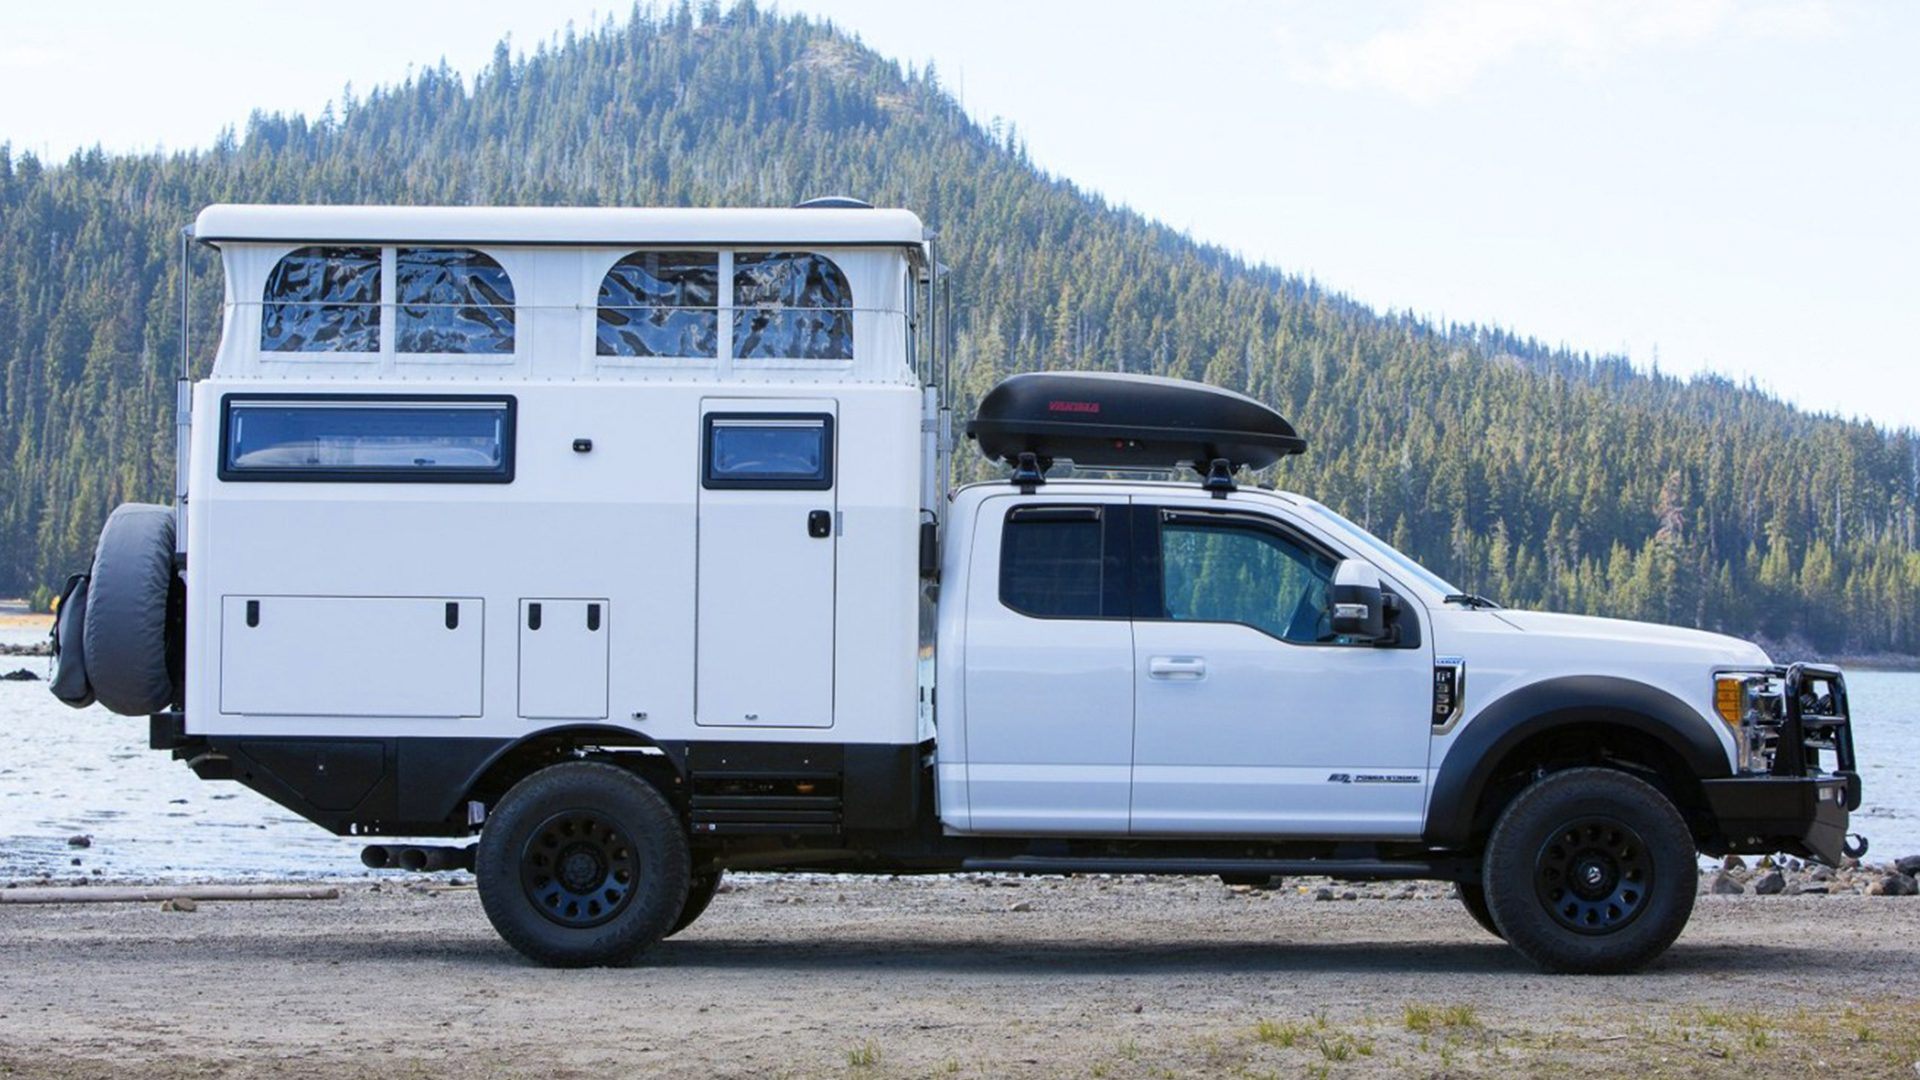 The $100'000 EarthCruiser Truck Camper Is A Digtal Nomads Dream!